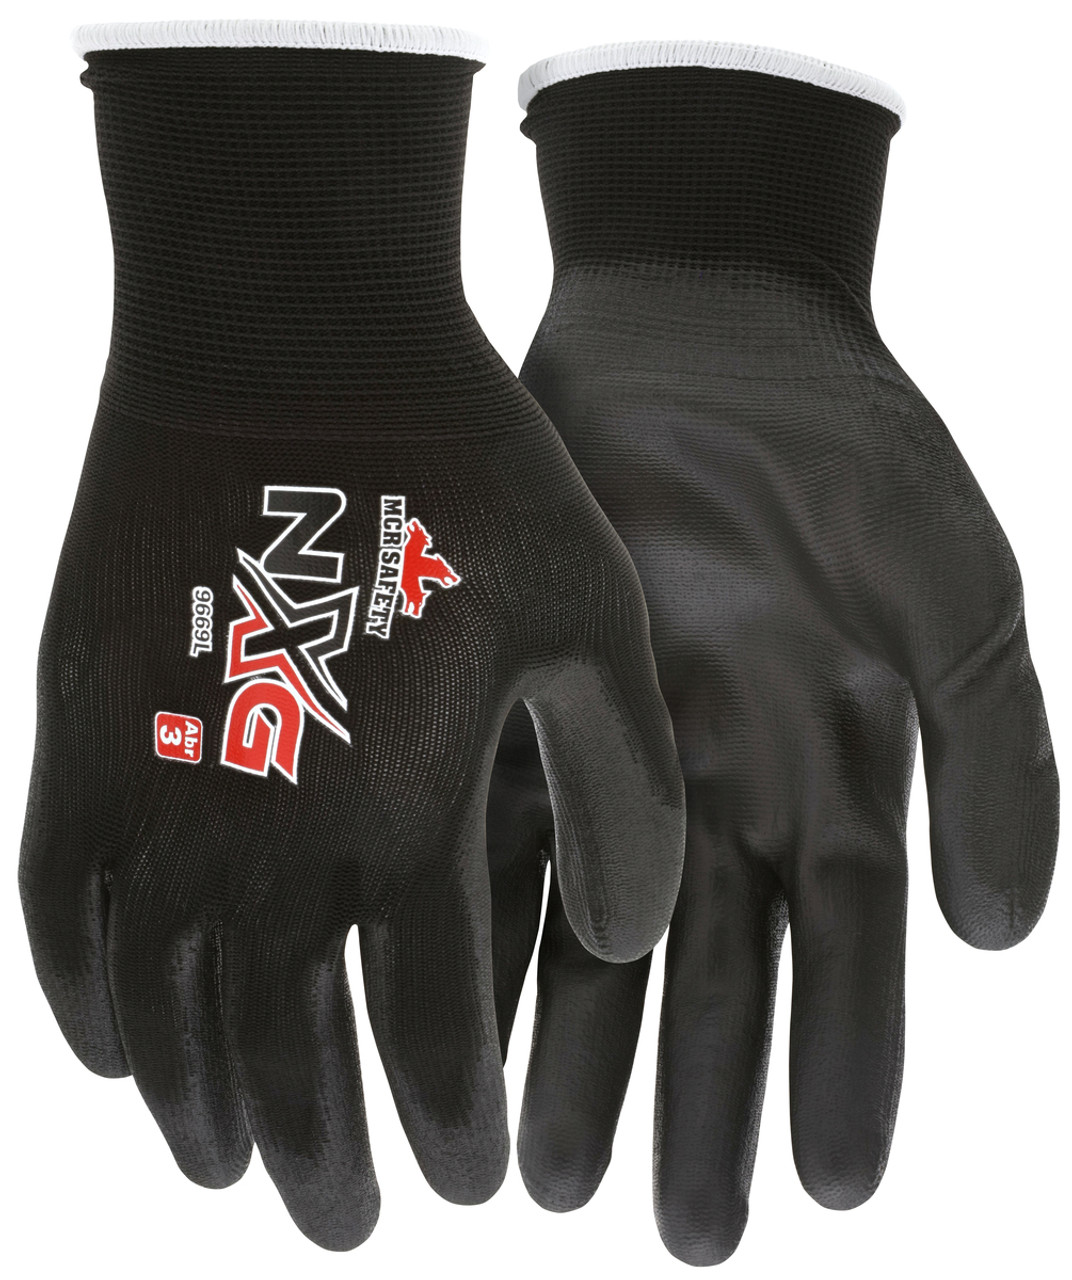 MCR Safety 9669L, 13 Gauge Black Nylon Shell, Black PU Palm & Fingers, L (12pr)